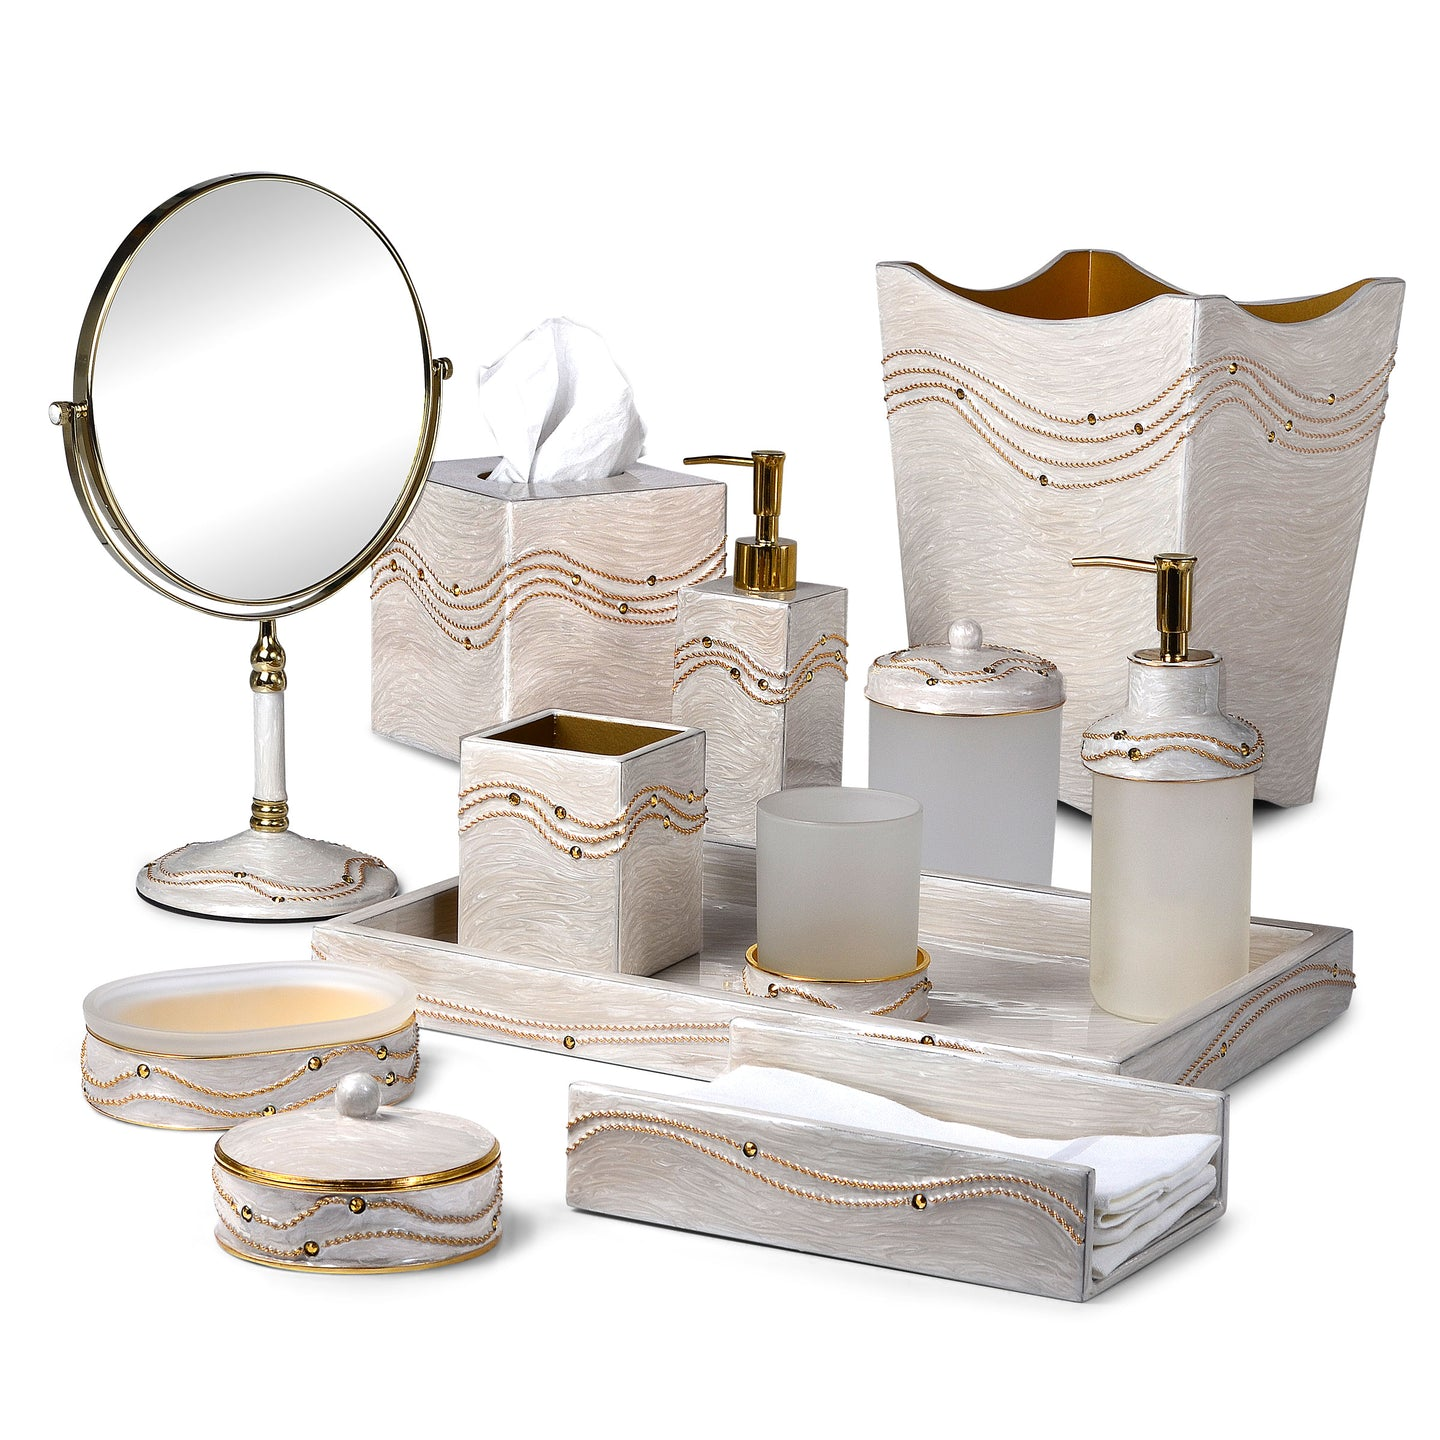 Mike + Ally | Luxury Bathroom Accessories